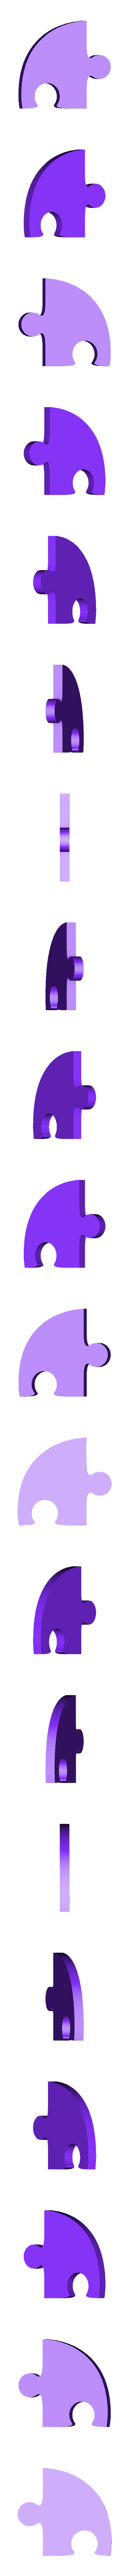 1.stl Download free STL file Autism Awareness Month Puzzle 2019 • Model to 3D print, Dsk